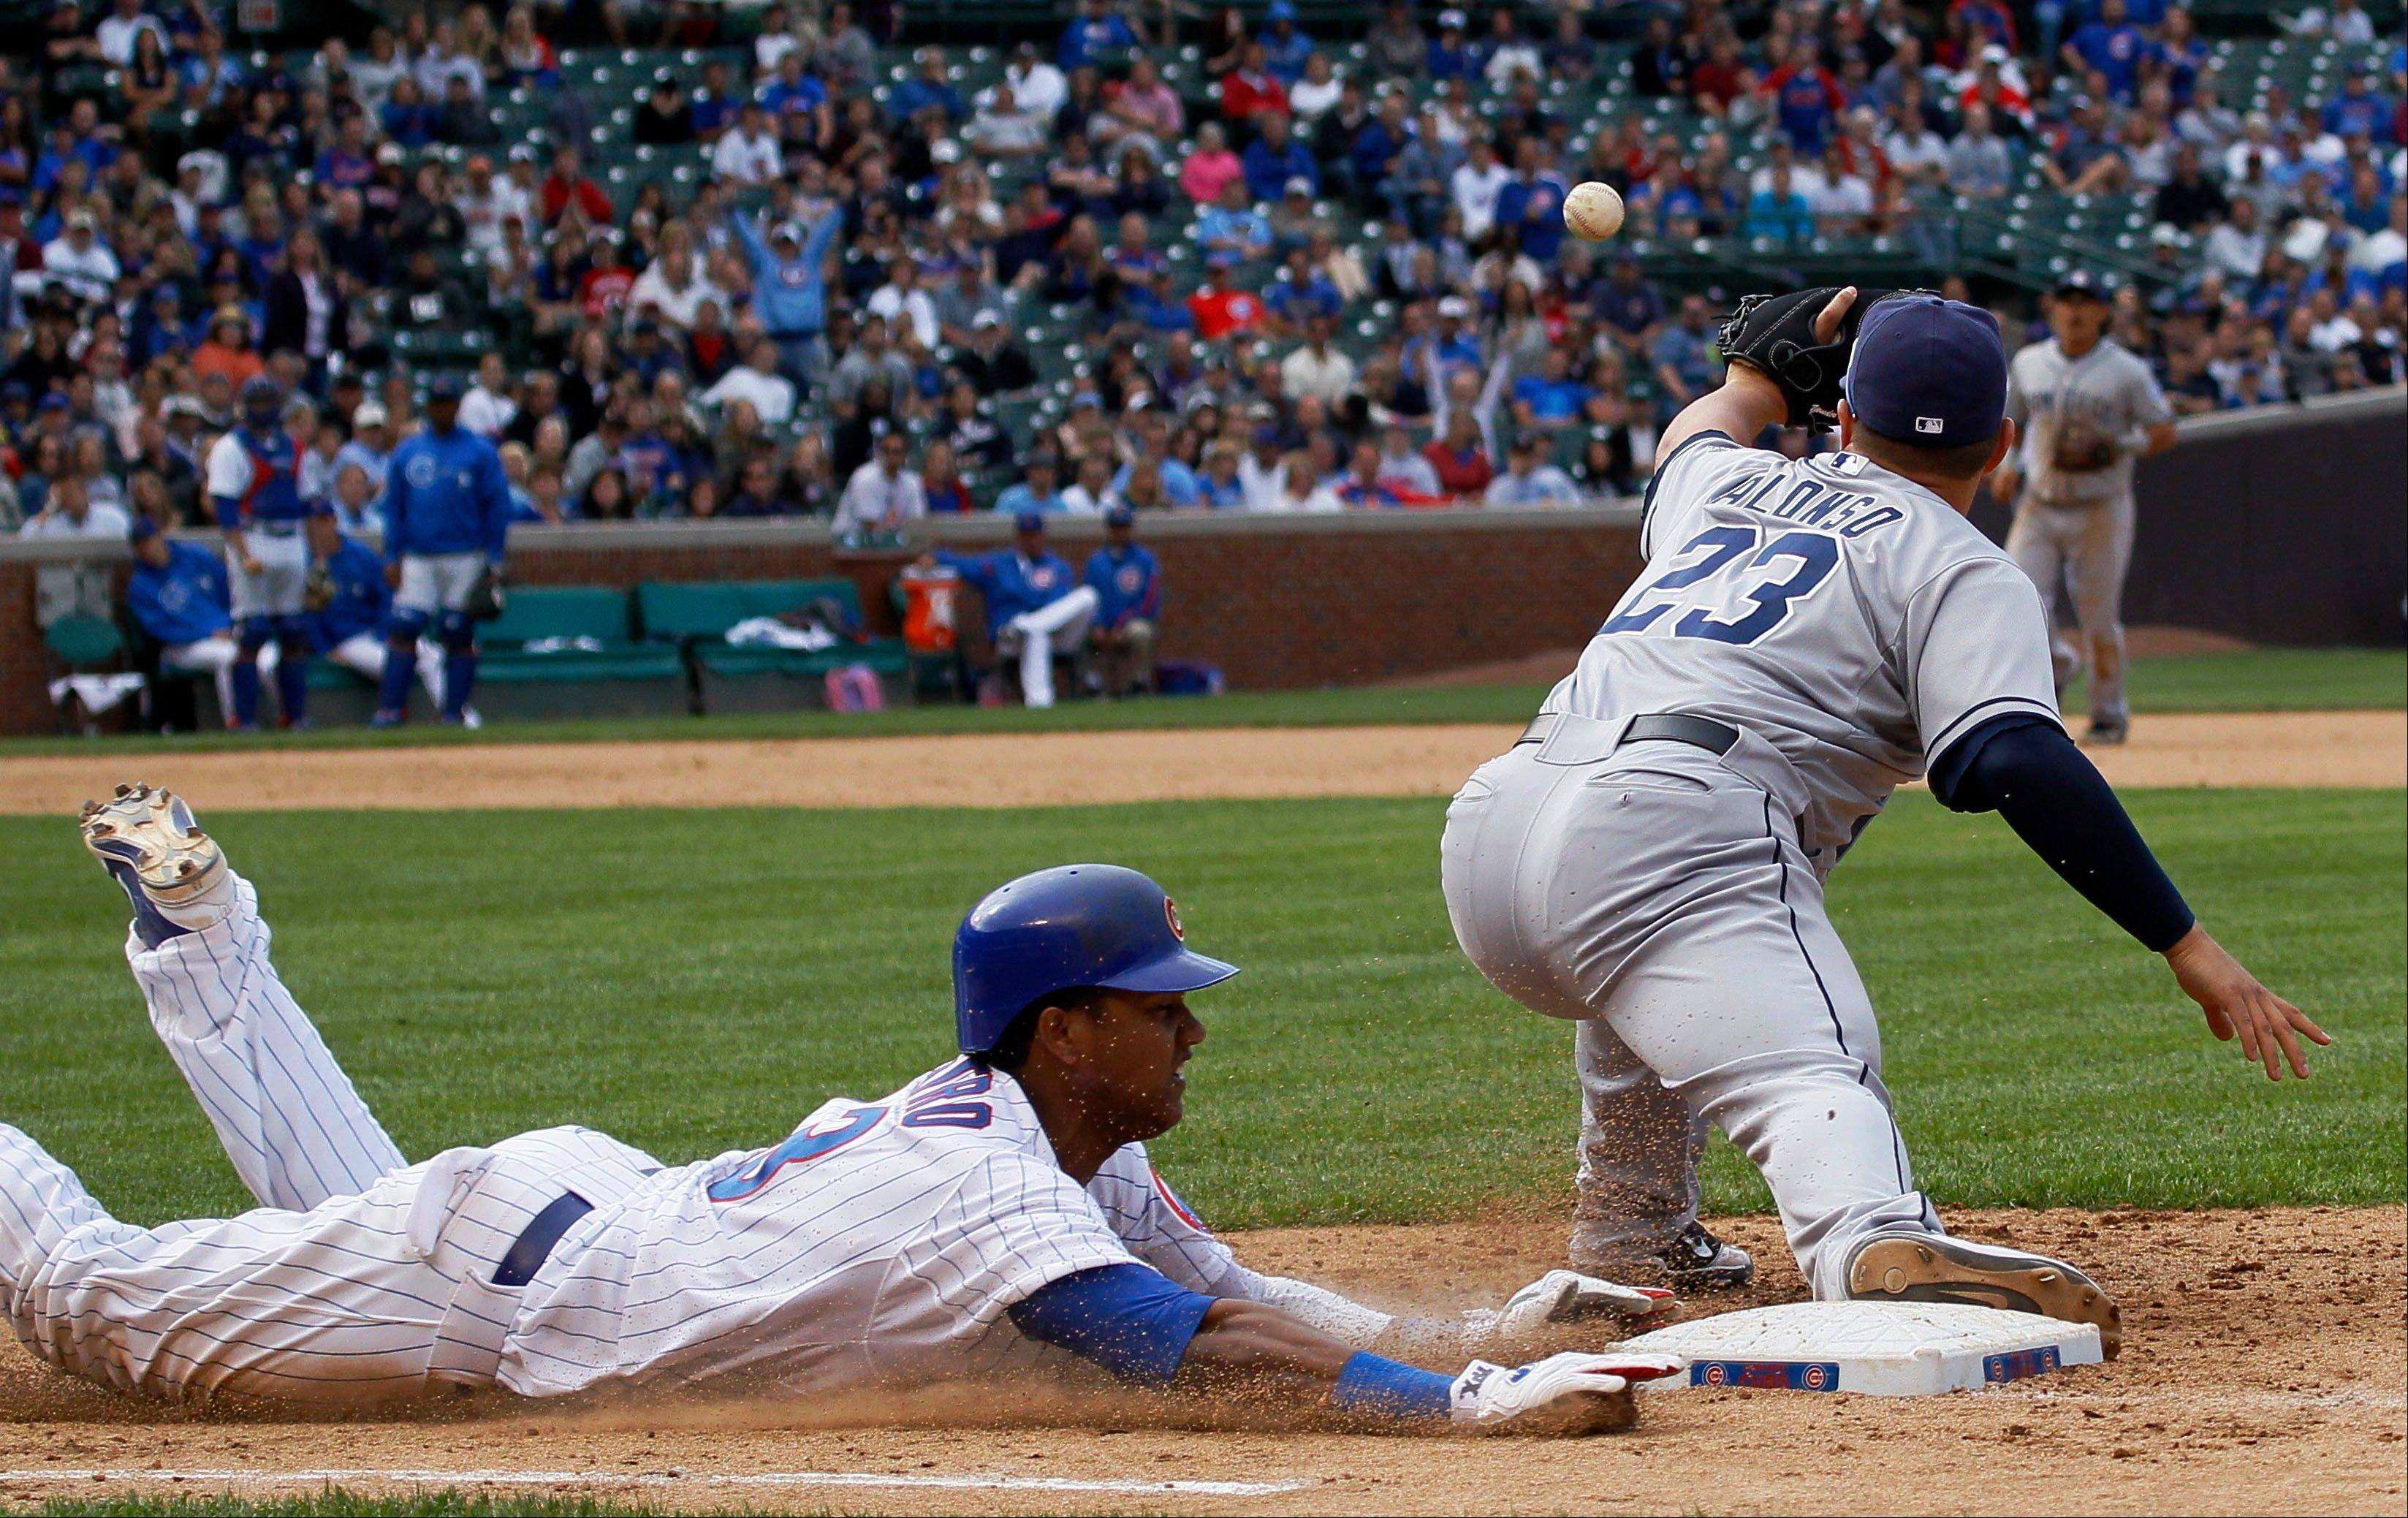 The Cubs' Starlin Castro, left, gets an infield RBI single with a headfirst slide into first base Wednesday at Wrigley Field.